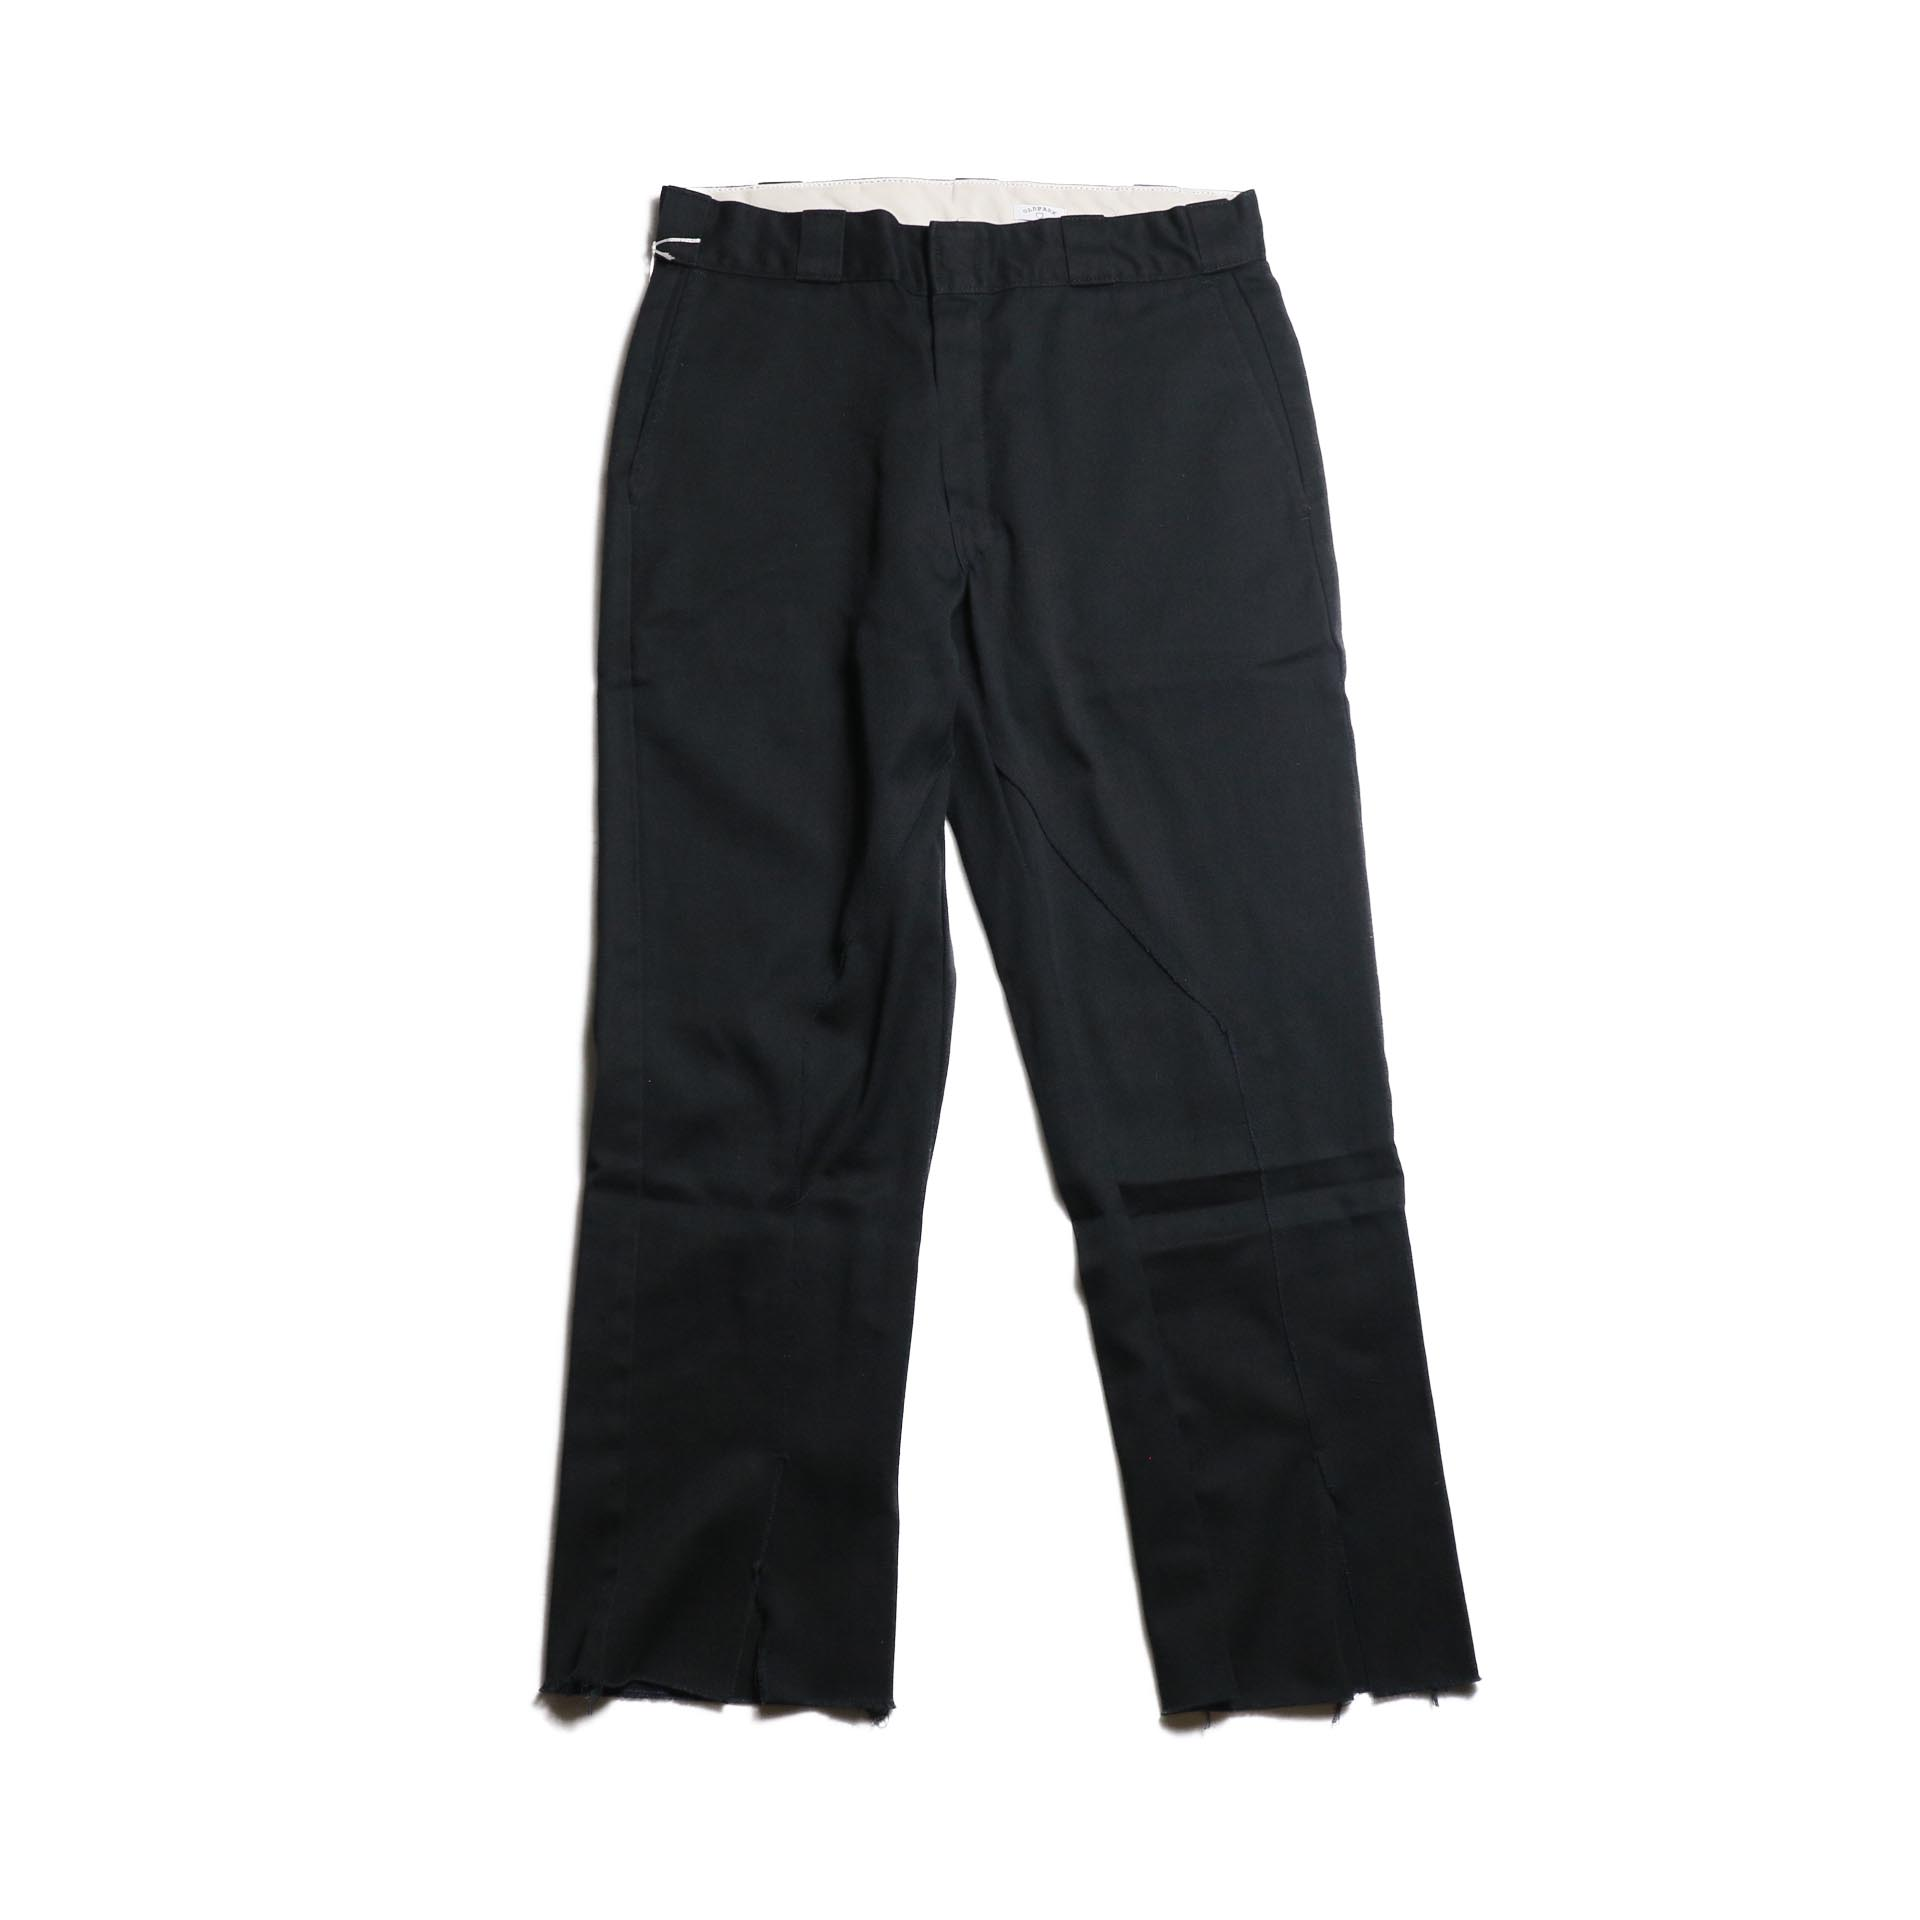 "OLD PARK / Slit Pants ""Dickies"" -Black (Msize-A)"